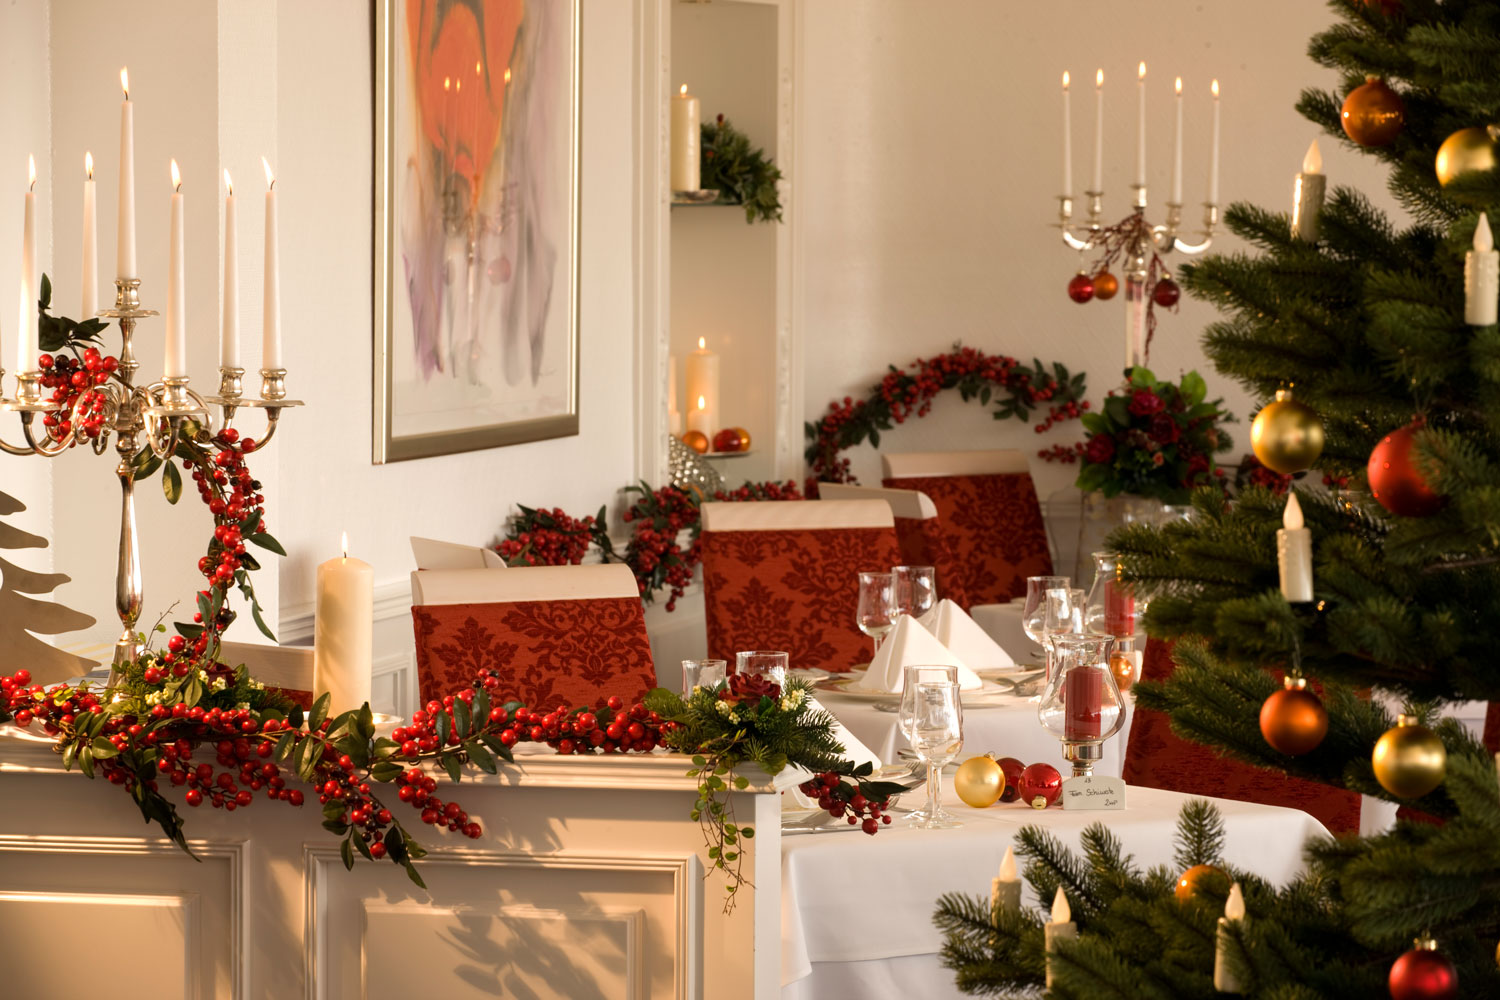 Weihnachten Archive Wellness Hotels Resorts Blog: dekoration weihnachten